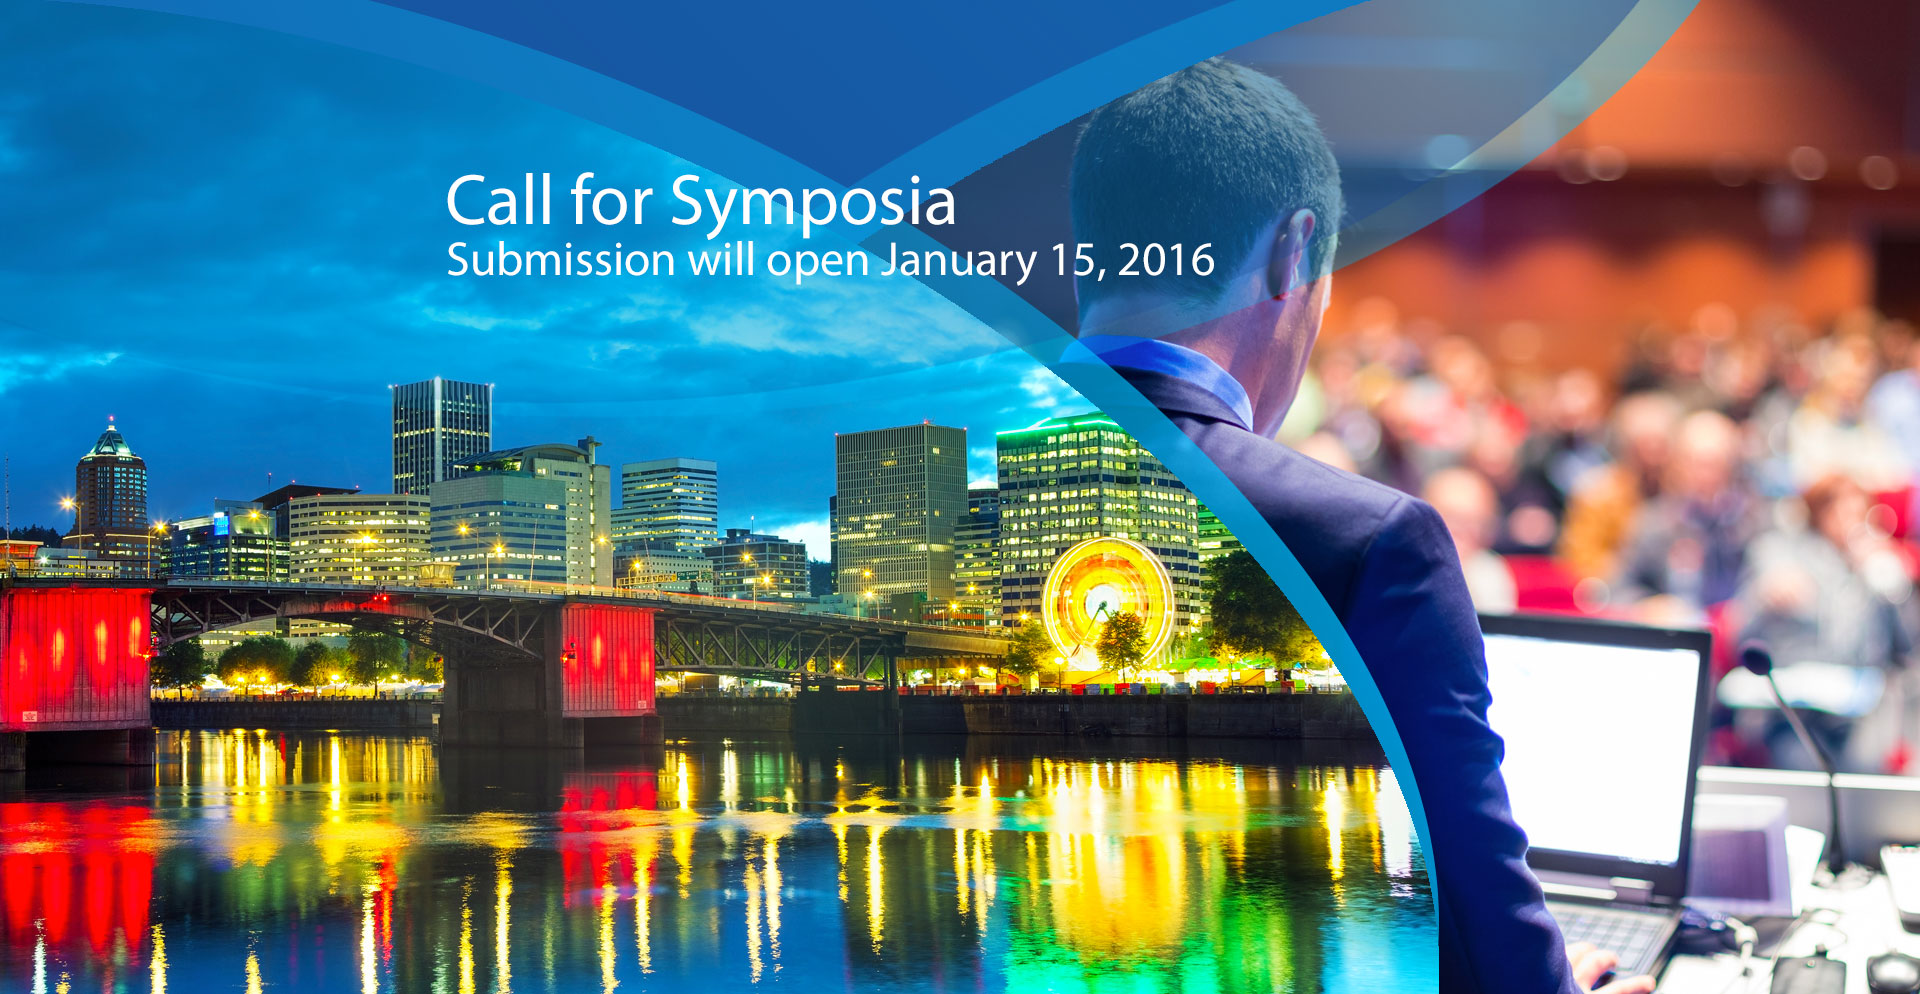 Call for Symposia